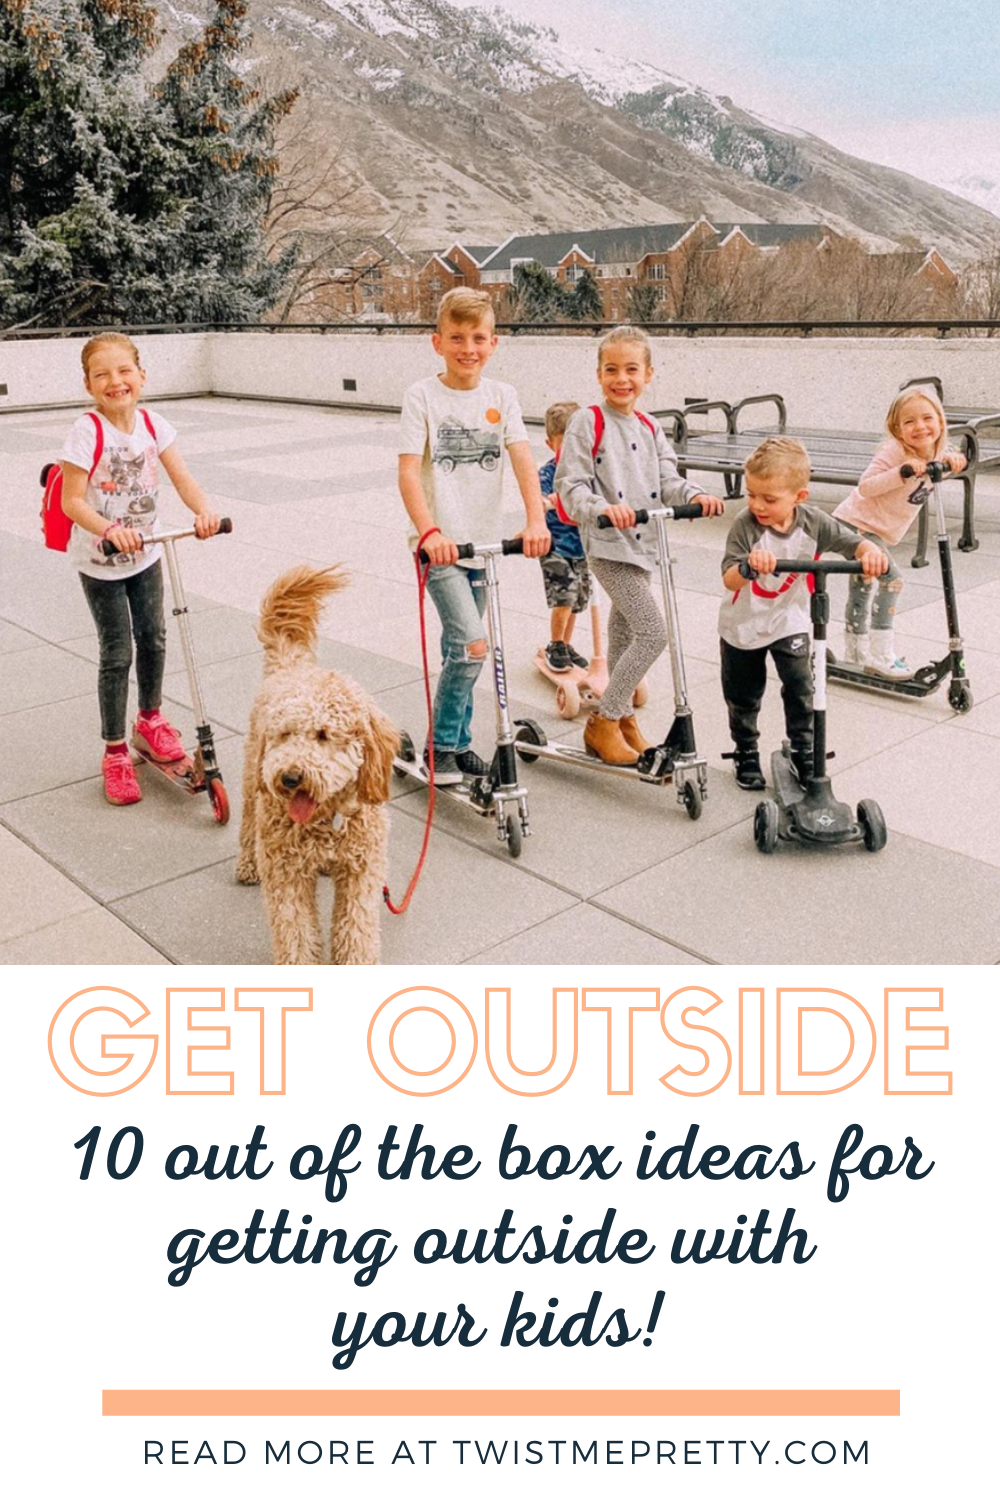 Get Outside- 10 out of the box ideas for getting outside with your kids! www.twistmepretty.com